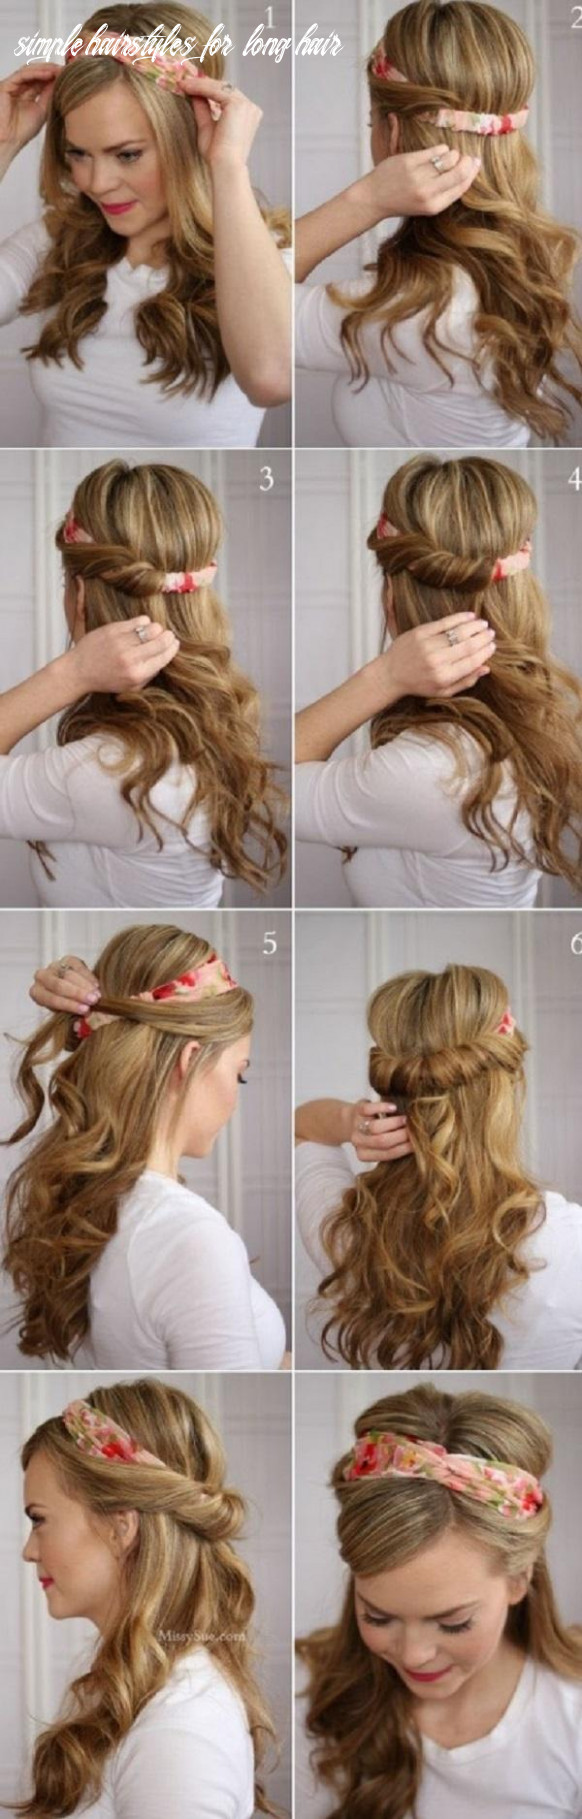 12 easy hairstyles for long hair   cuded simple hairstyles for long hair